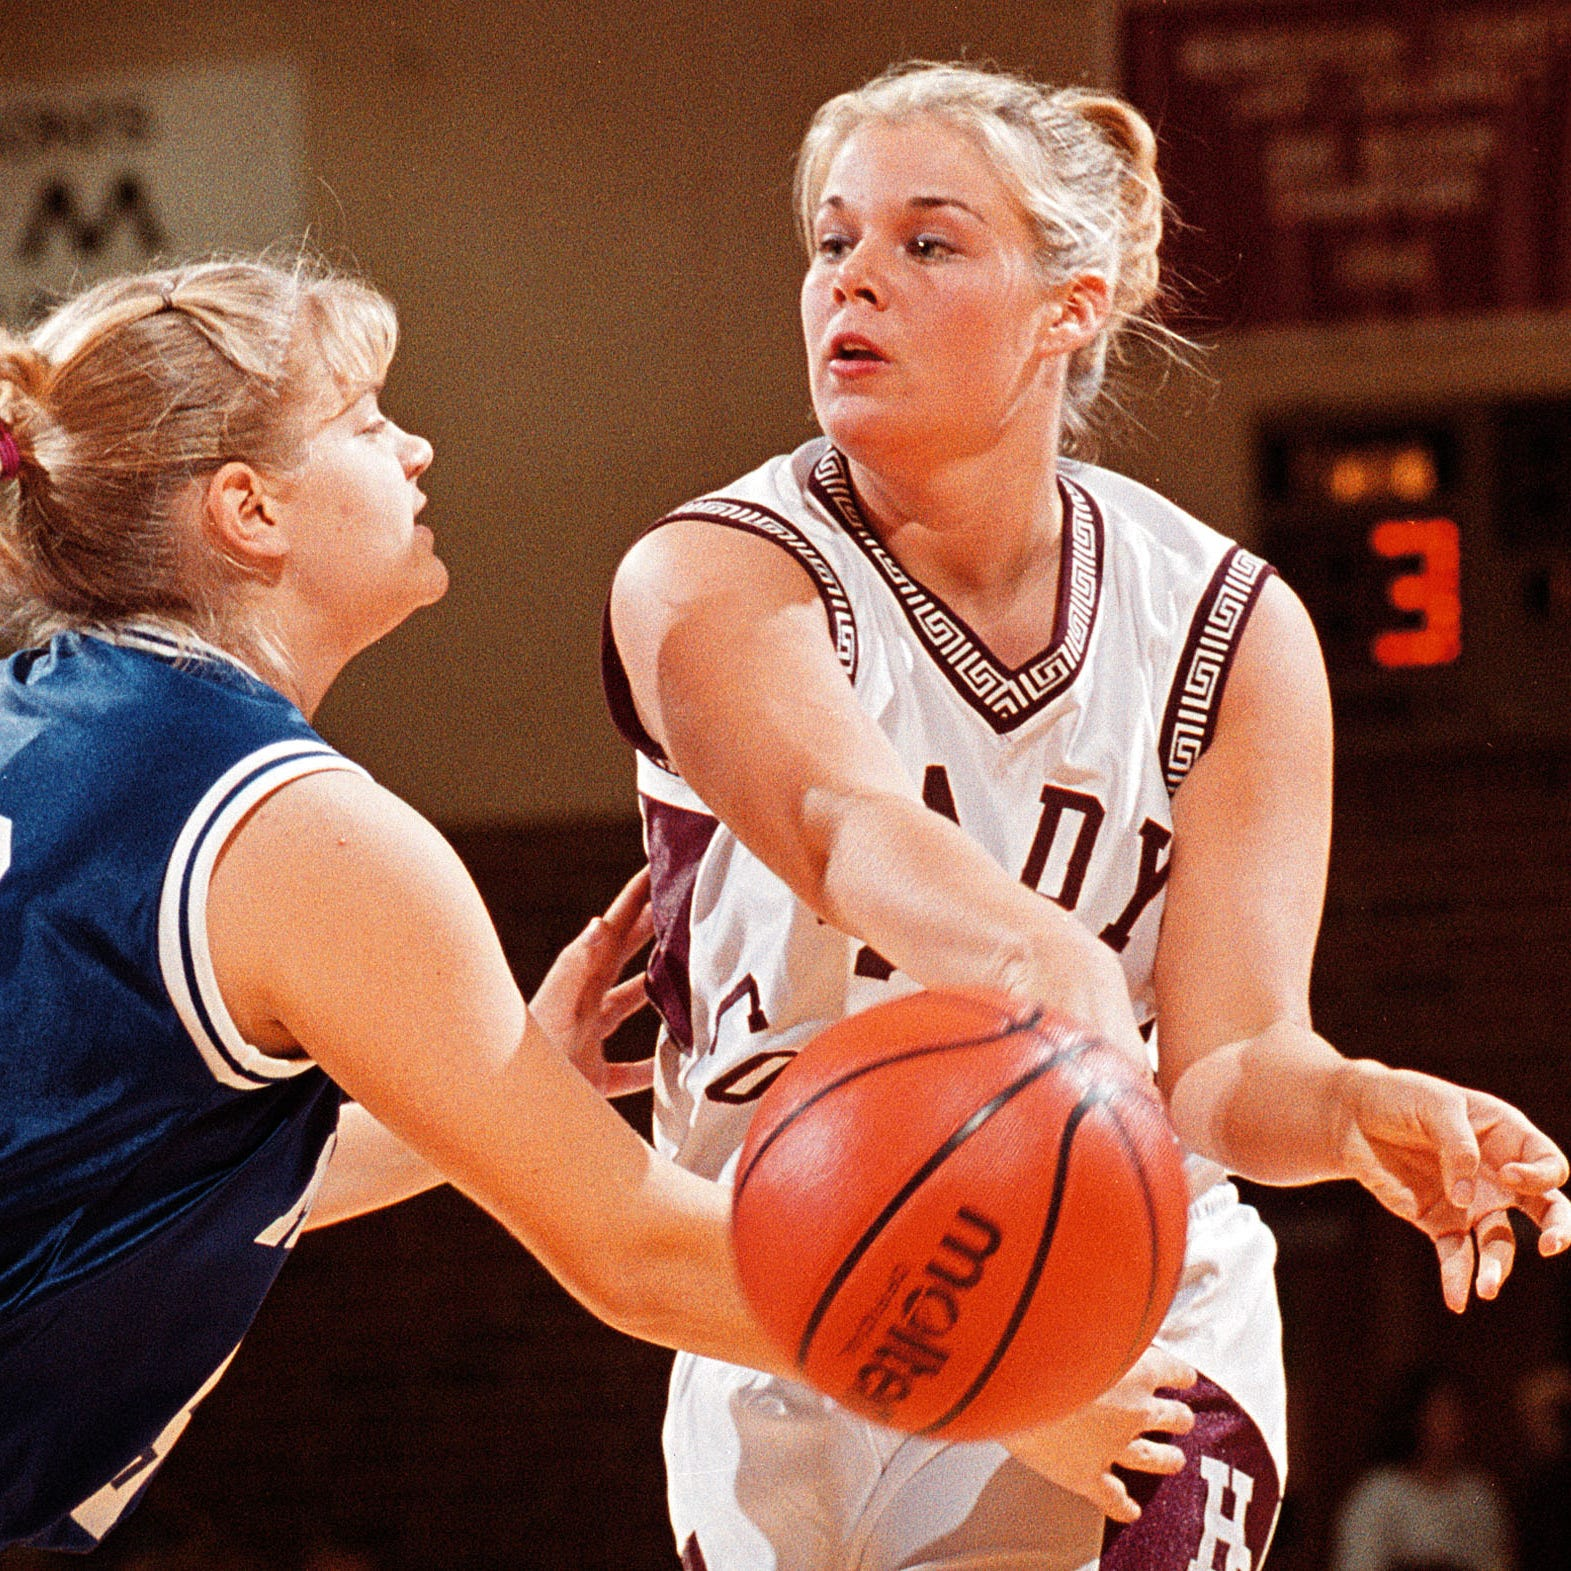 Hall of Famer Lyndsay Howard was a two-sport star who reached new heights in college